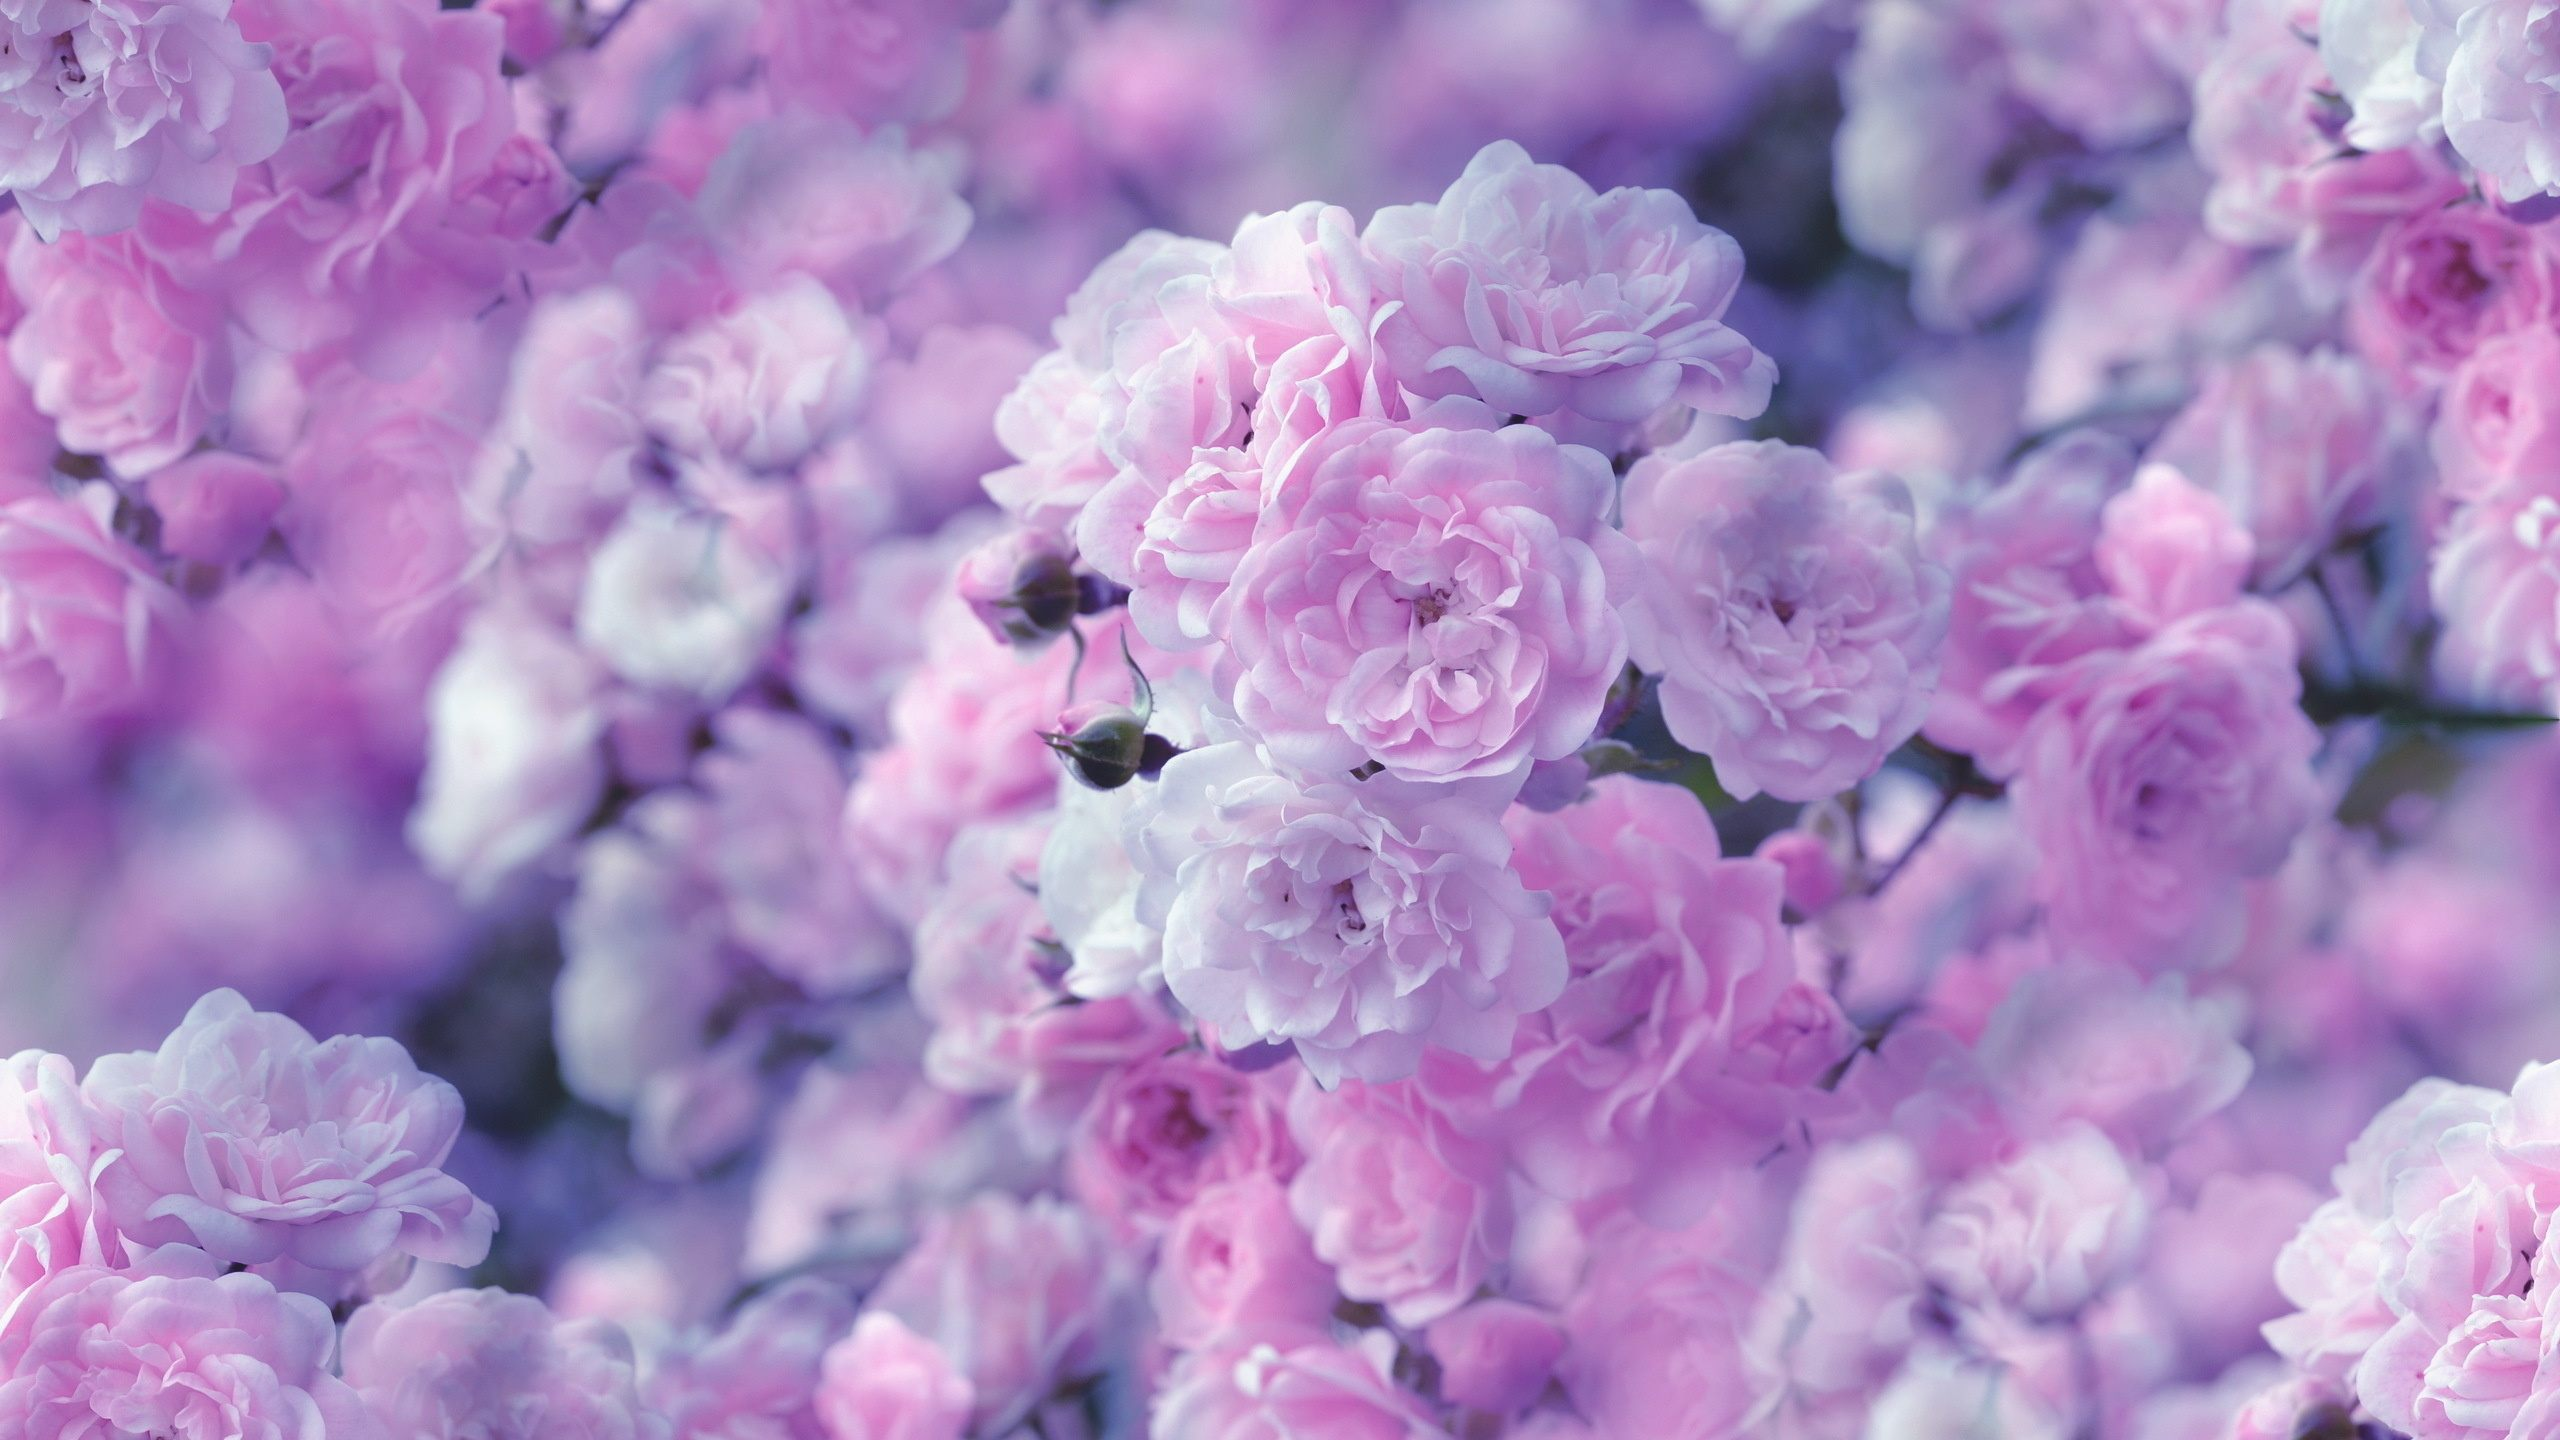 Collection Of Pink Flower Wallpaper On Hdwallpapers 2560x1440